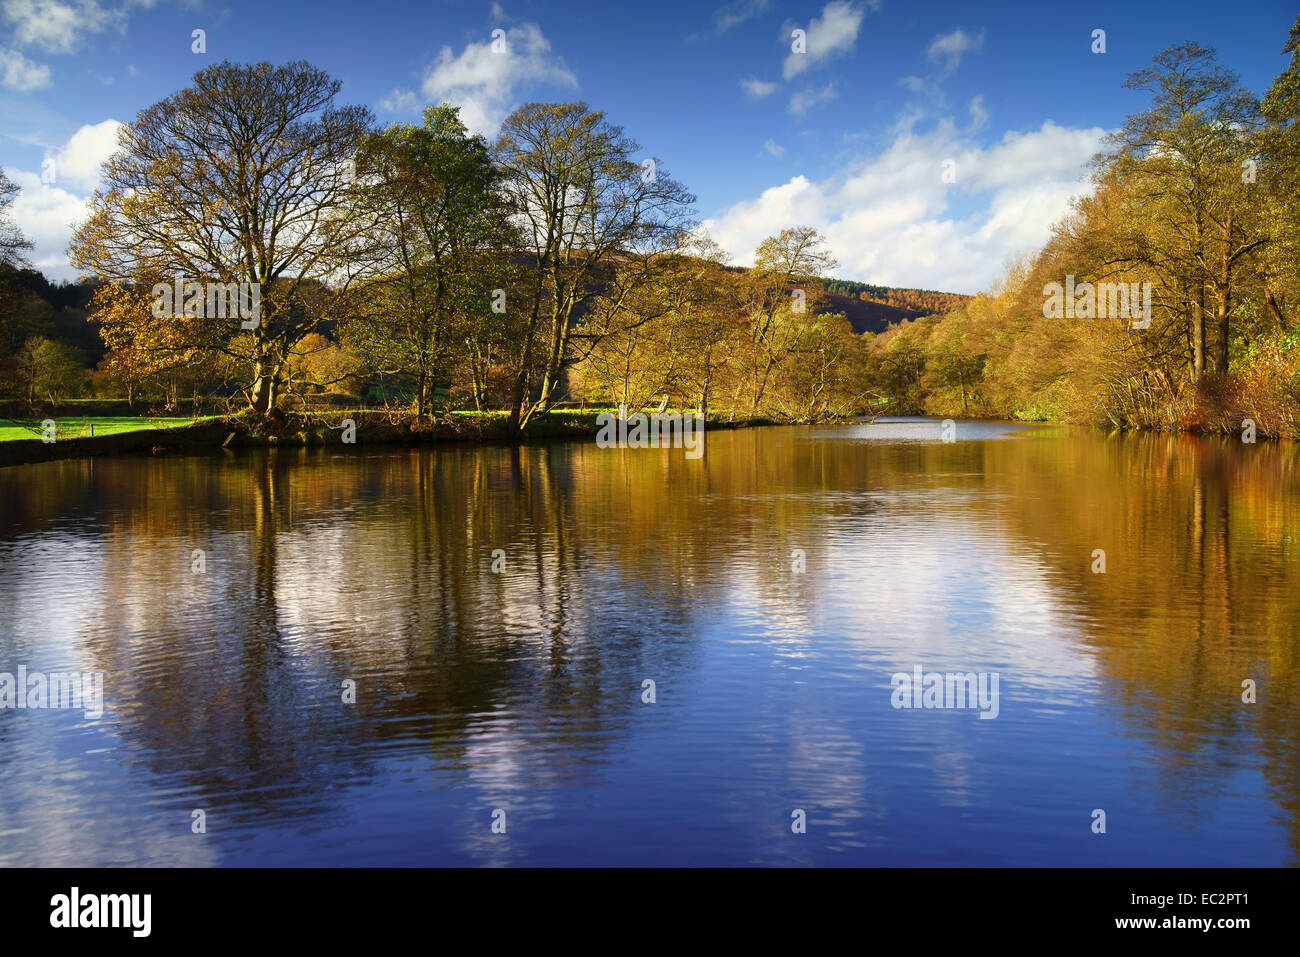 UK,Derbyshire,Peak District,Bamford,River Derwent Reflections - Stock Image